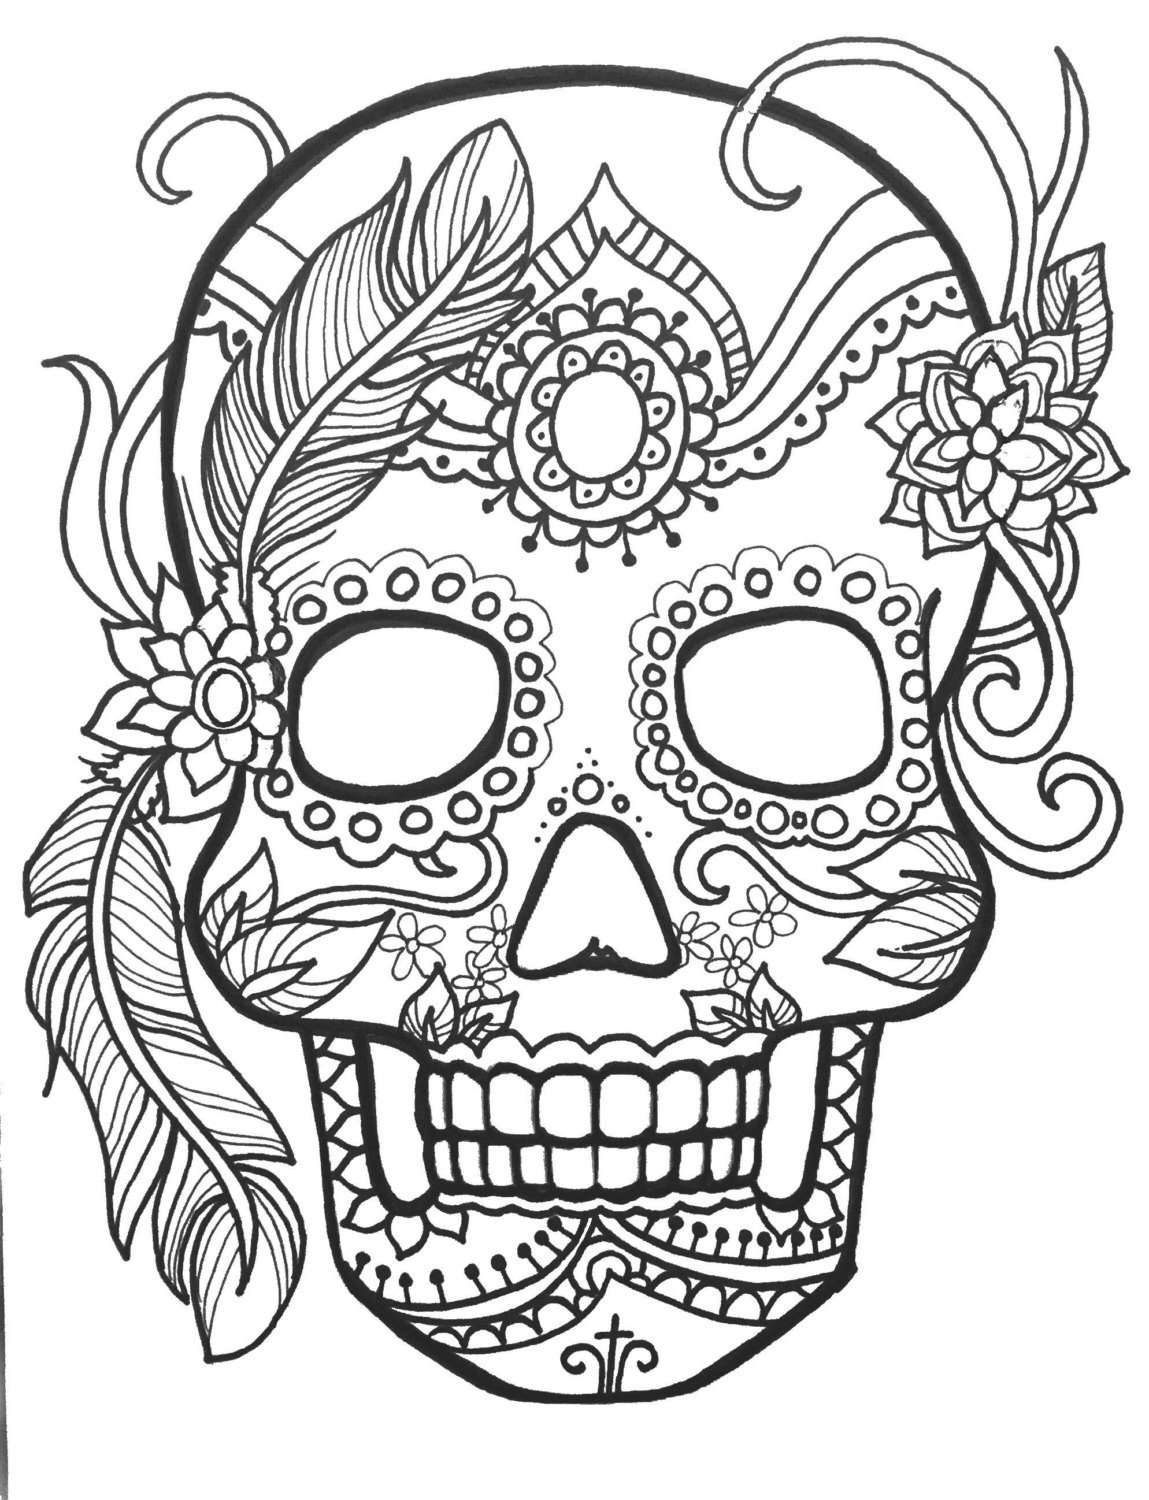 1149x1500 Day Of The Dead Mariachi Band Coloring Pages For Adults And Linefa